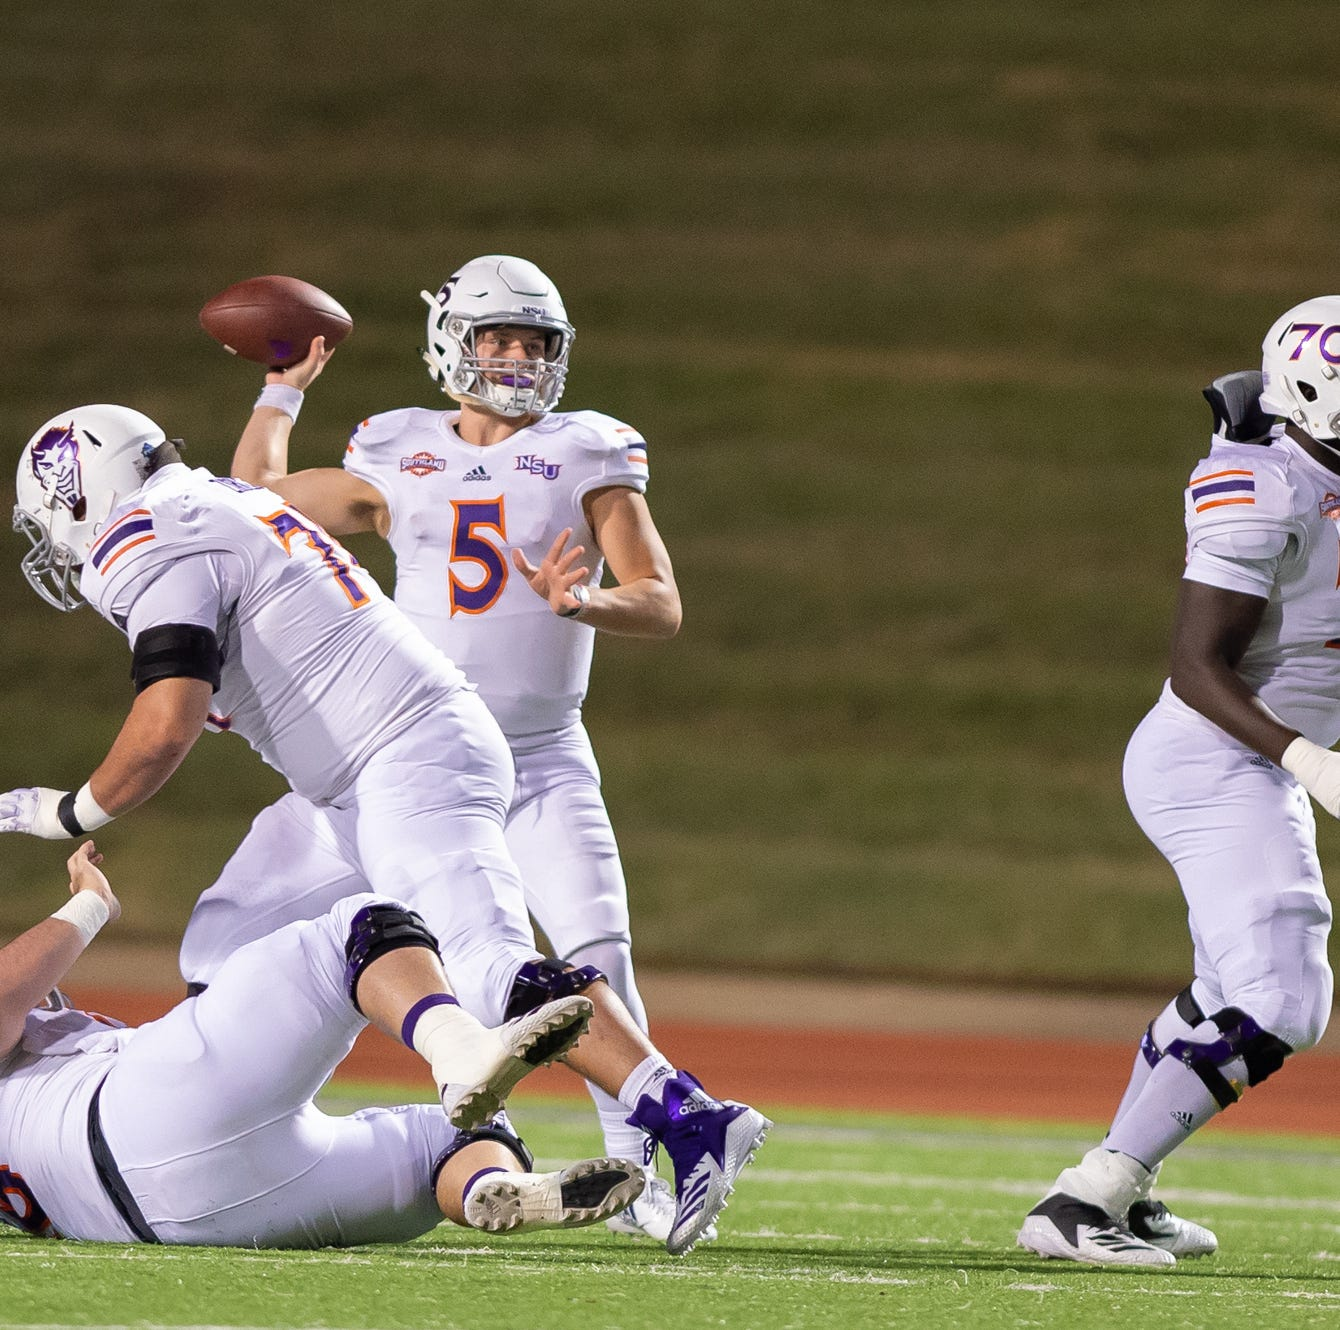 Northwestern State rallies in second half to defeat Stephen F. Austin